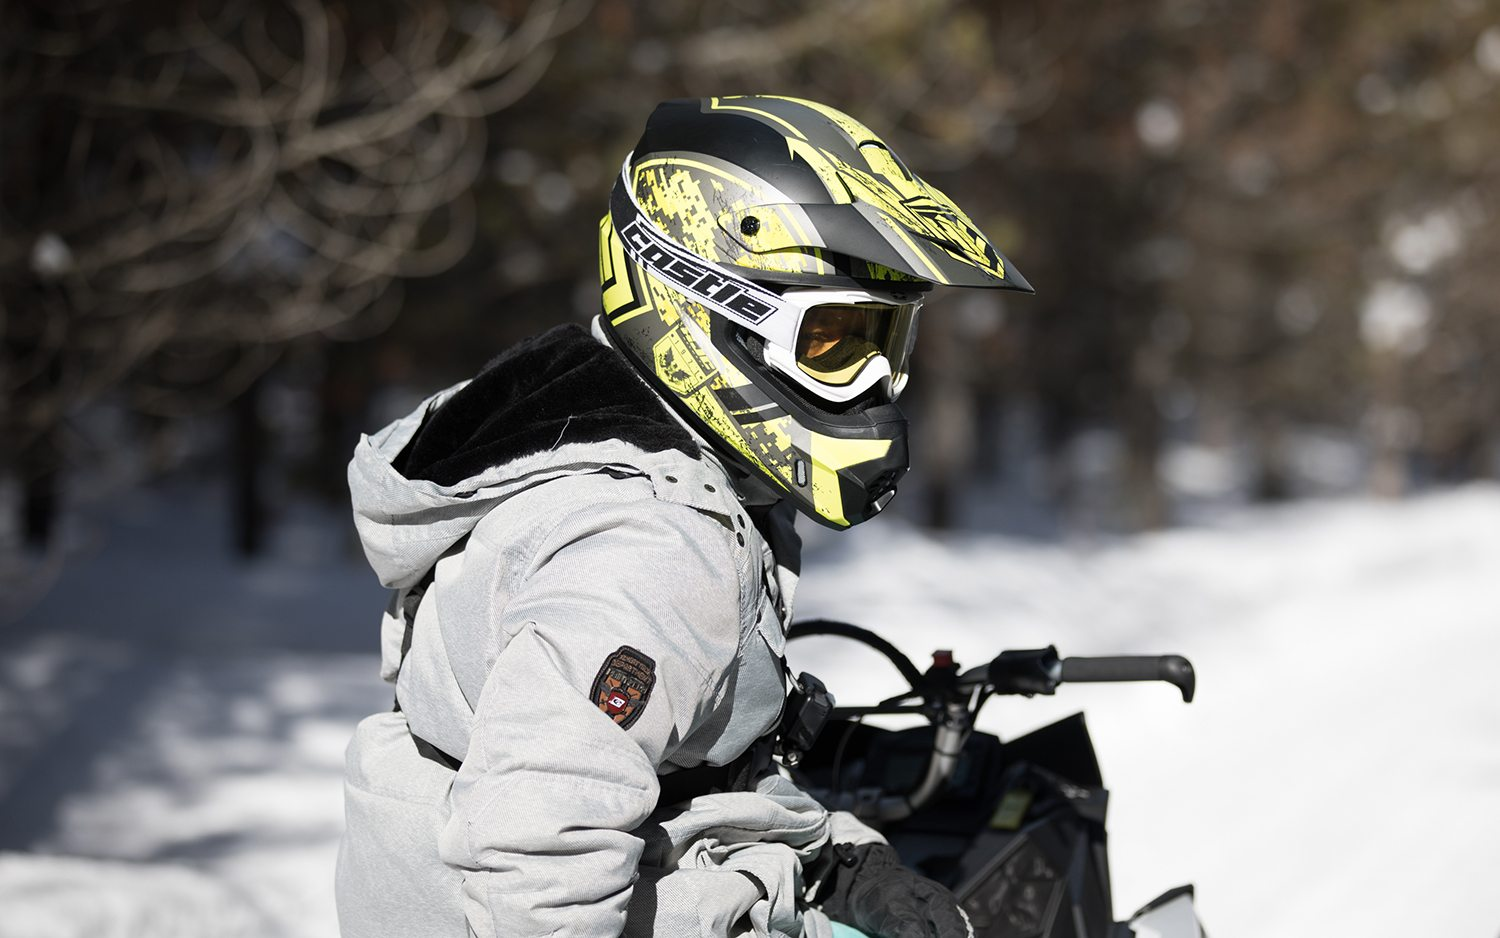 action-motor-sports-helmet.jpg